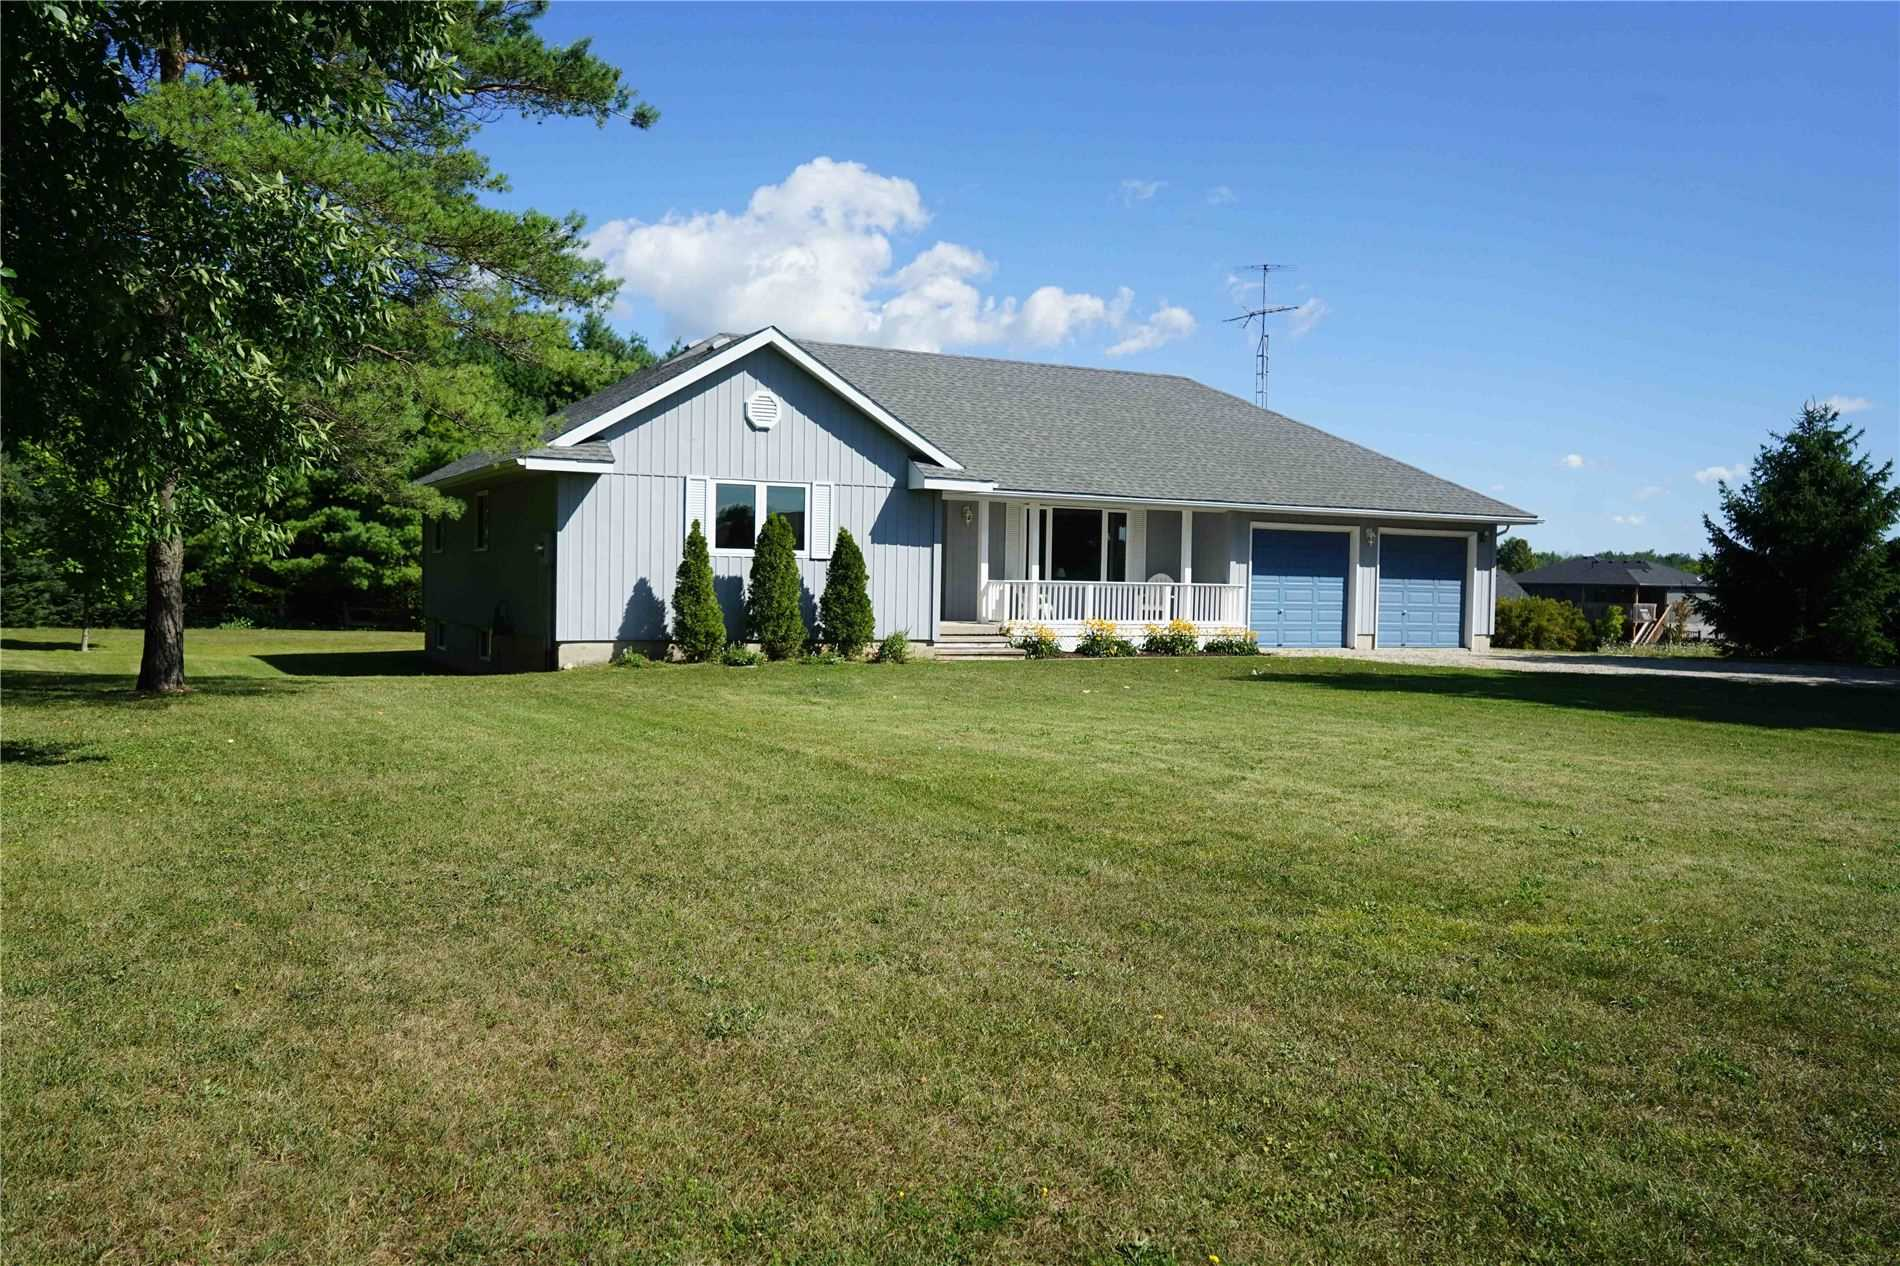 pictures of house for sale MLS: X4561210 located at 822743 Sideroad 1, Chatsworth N0H1G0